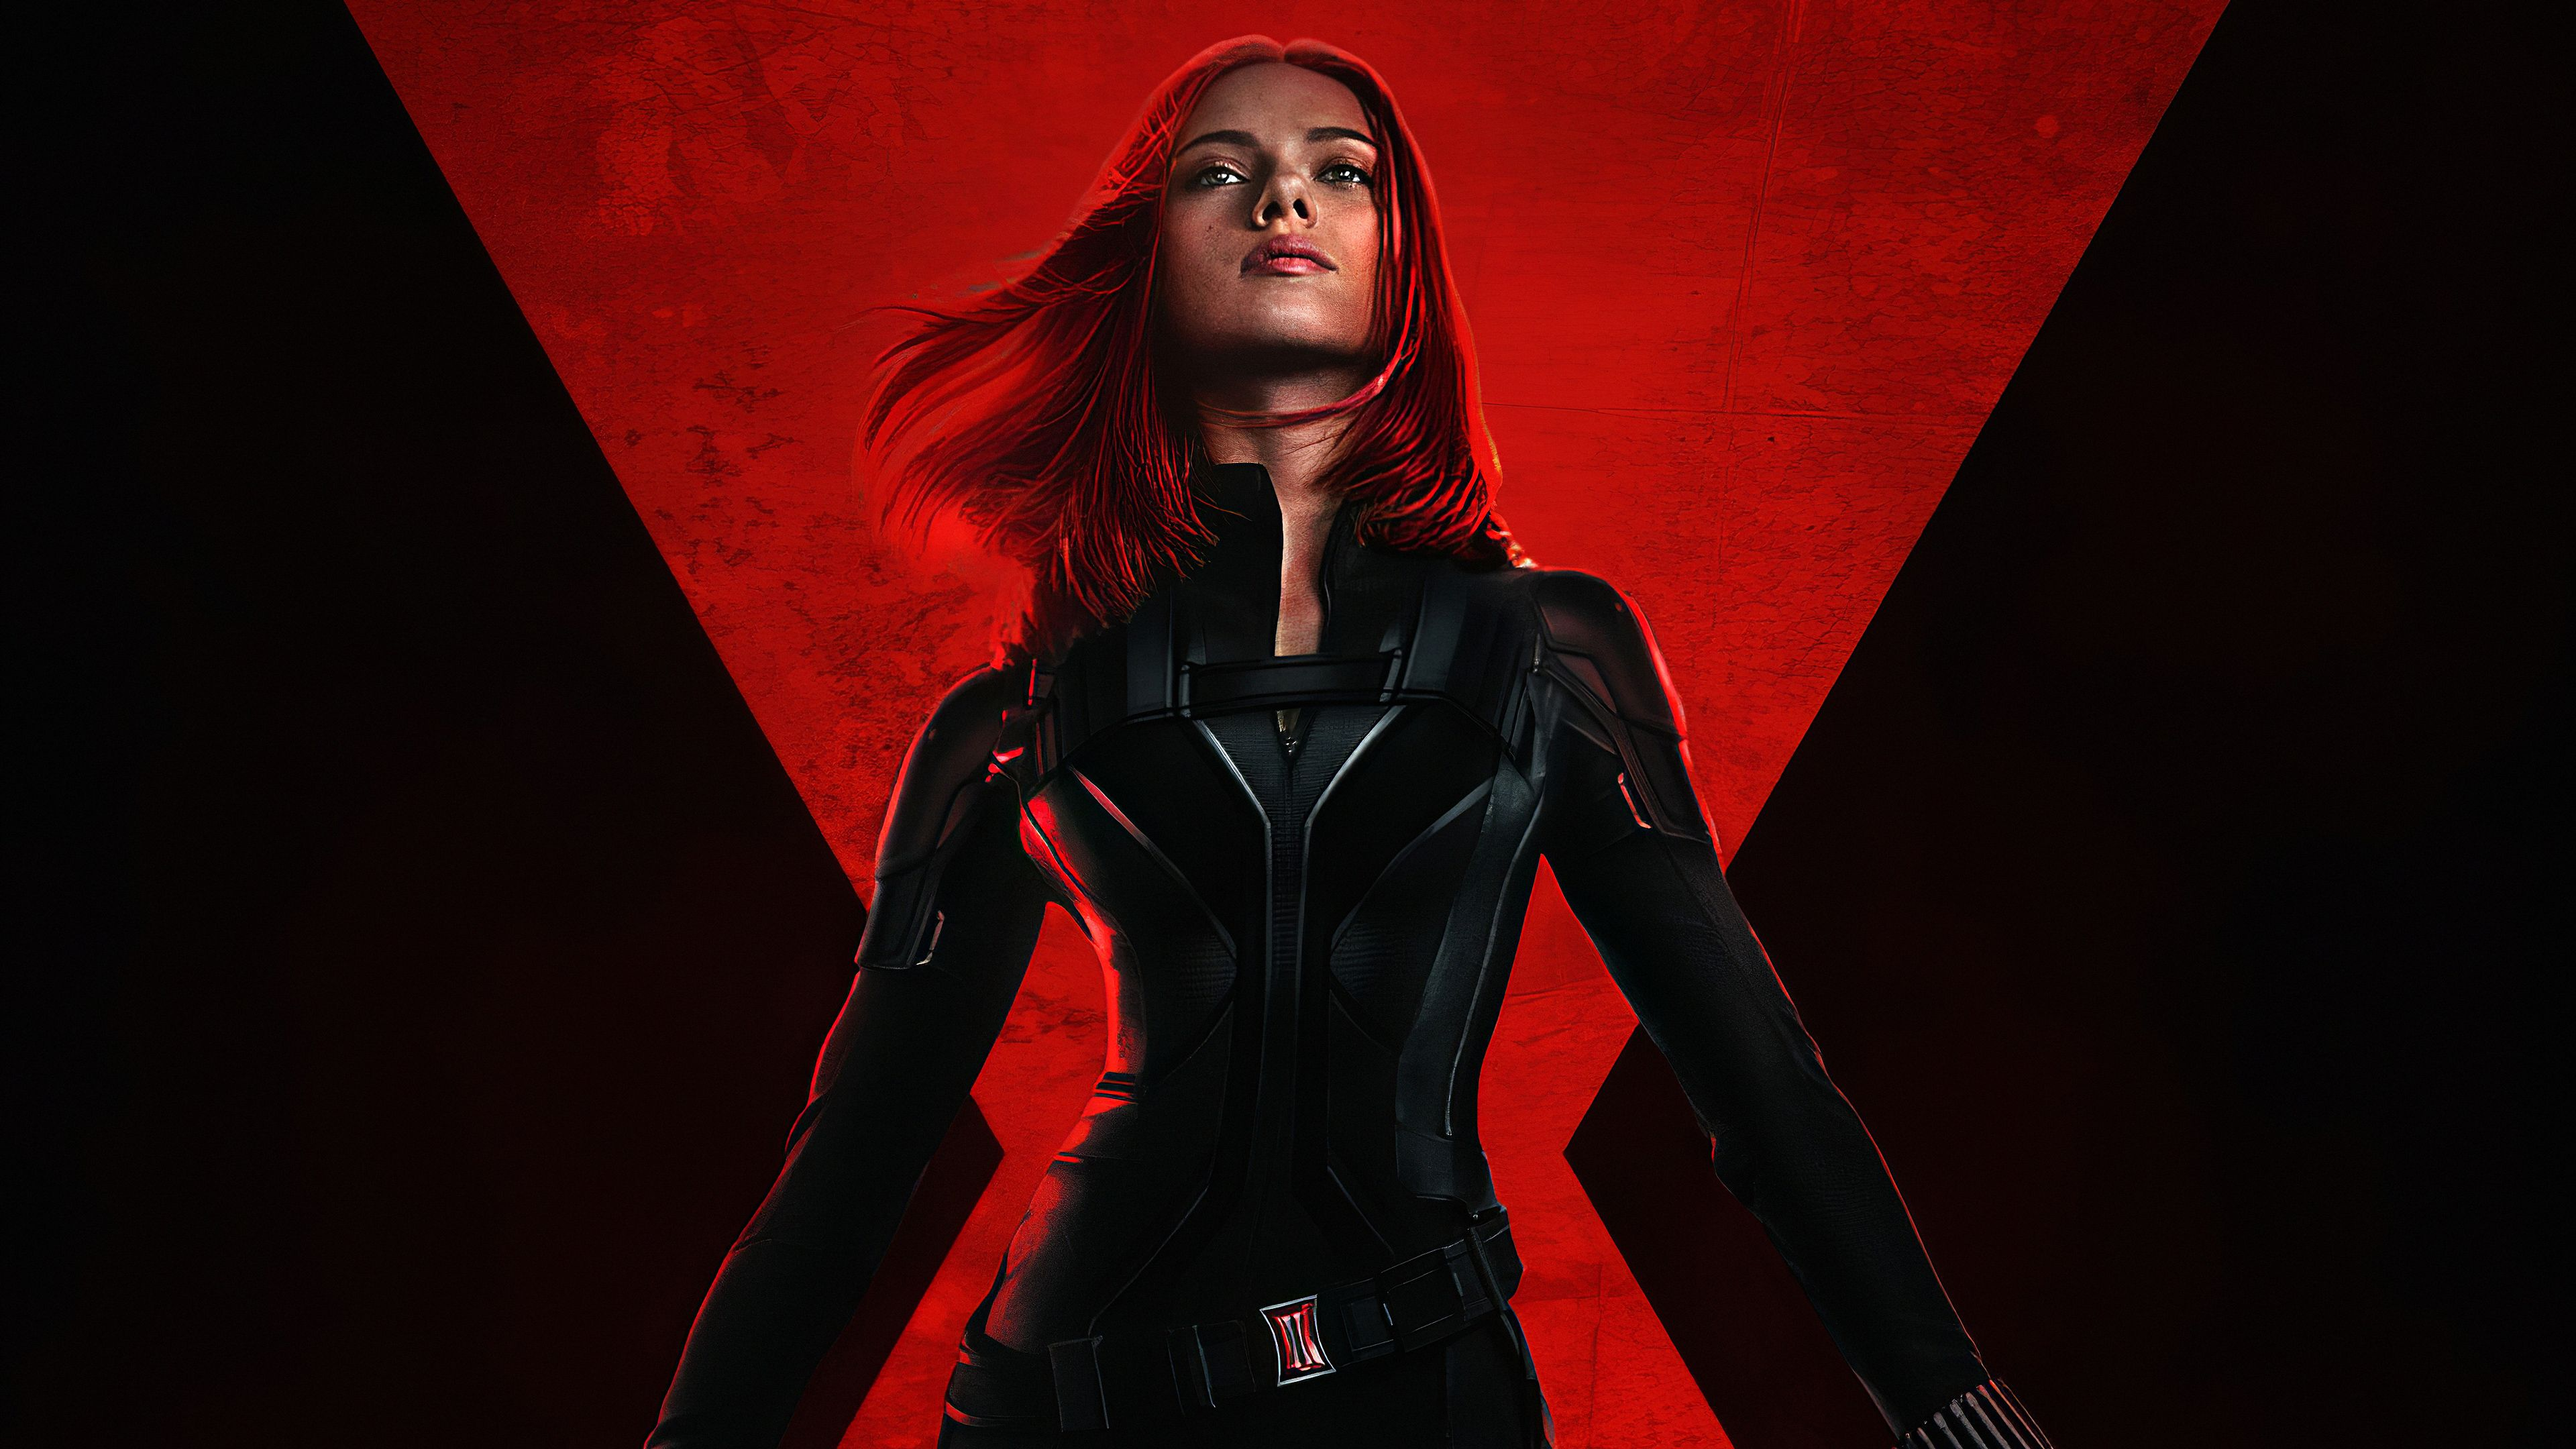 Black Widow 2020 movie black widows wallpaper, Black Widow movie 4k  wallpaper, black widow 4k wallpaper | Kara dul, Scarlett johansson, Marvel